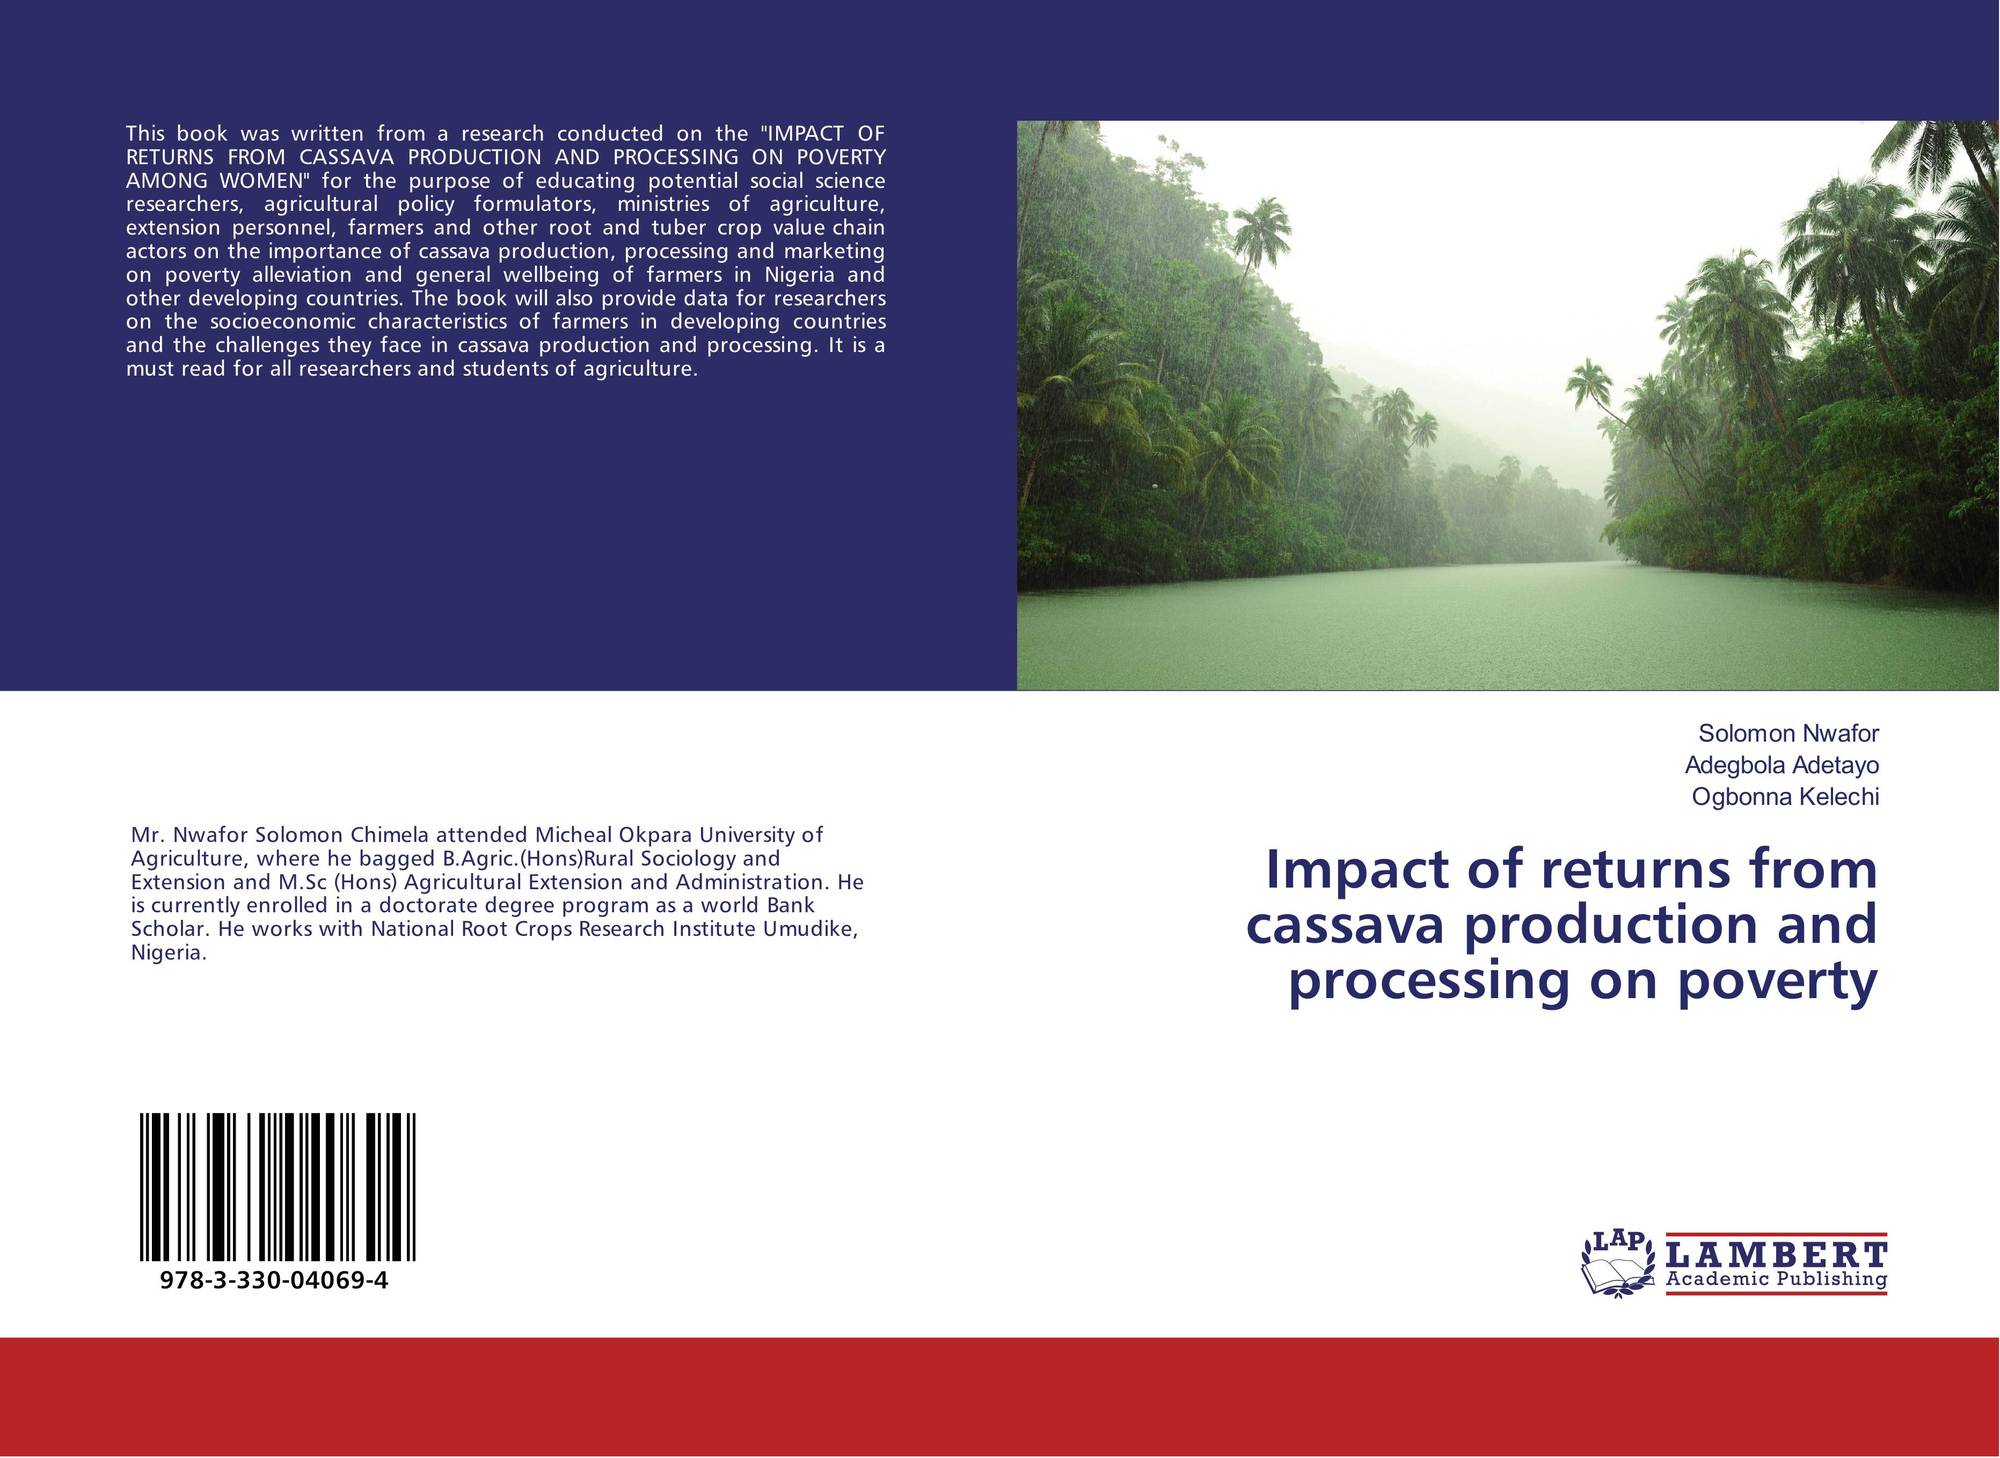 Impact of returns from cassava production and processing on poverty